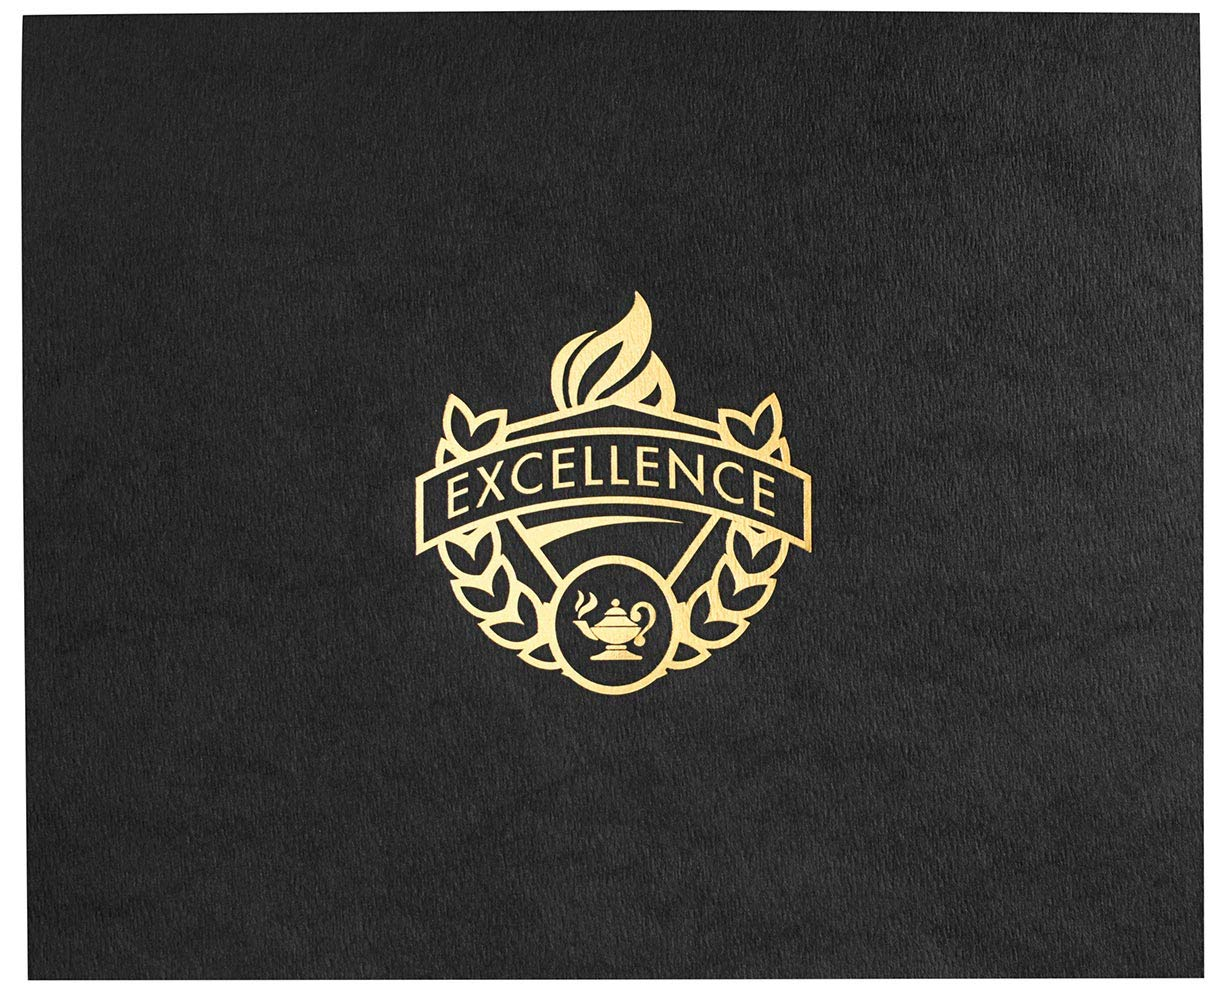 Excellence Certificate Jackets, 9 Inches x 12 Inches Folded, Black with Gold Foil, 50 Count by PaperDirect